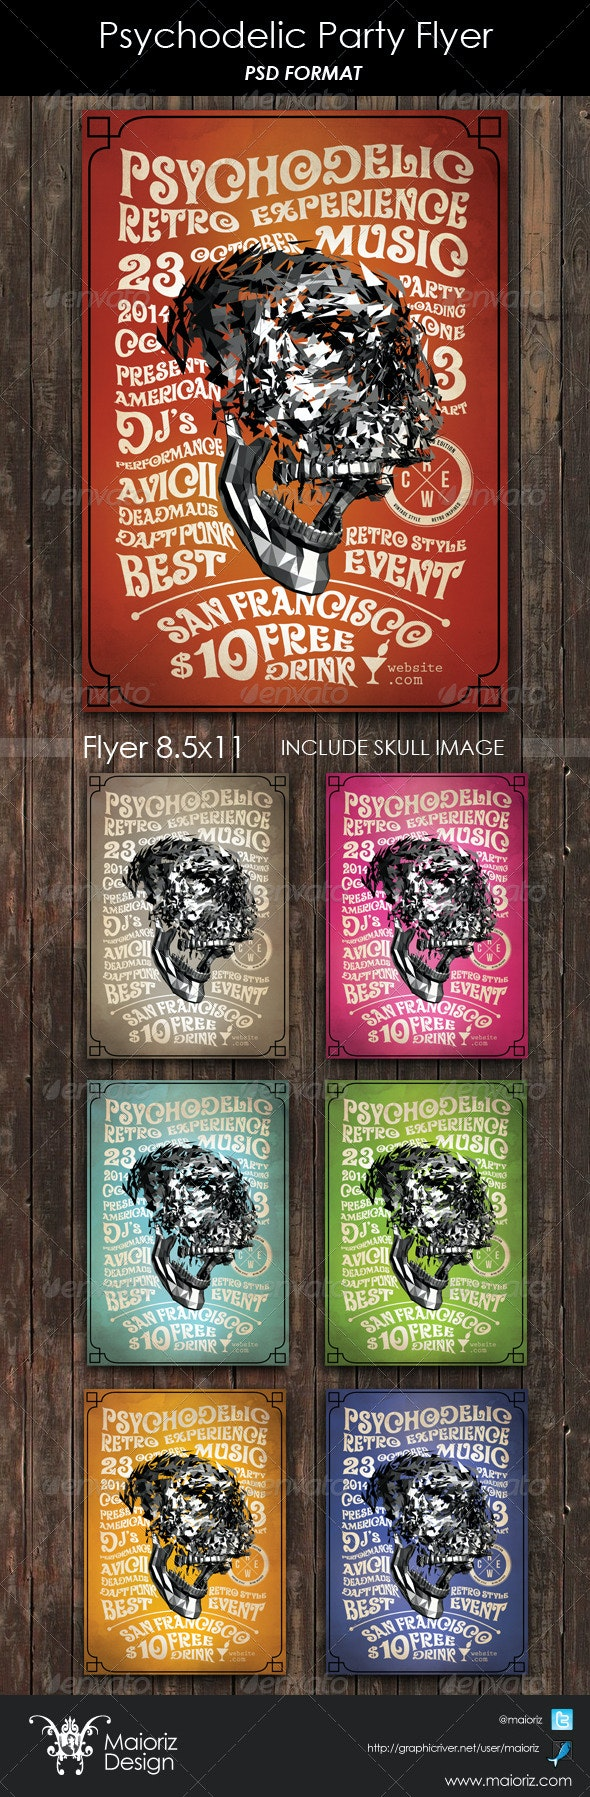 Psychodelic Party Flyer - Clubs & Parties Events